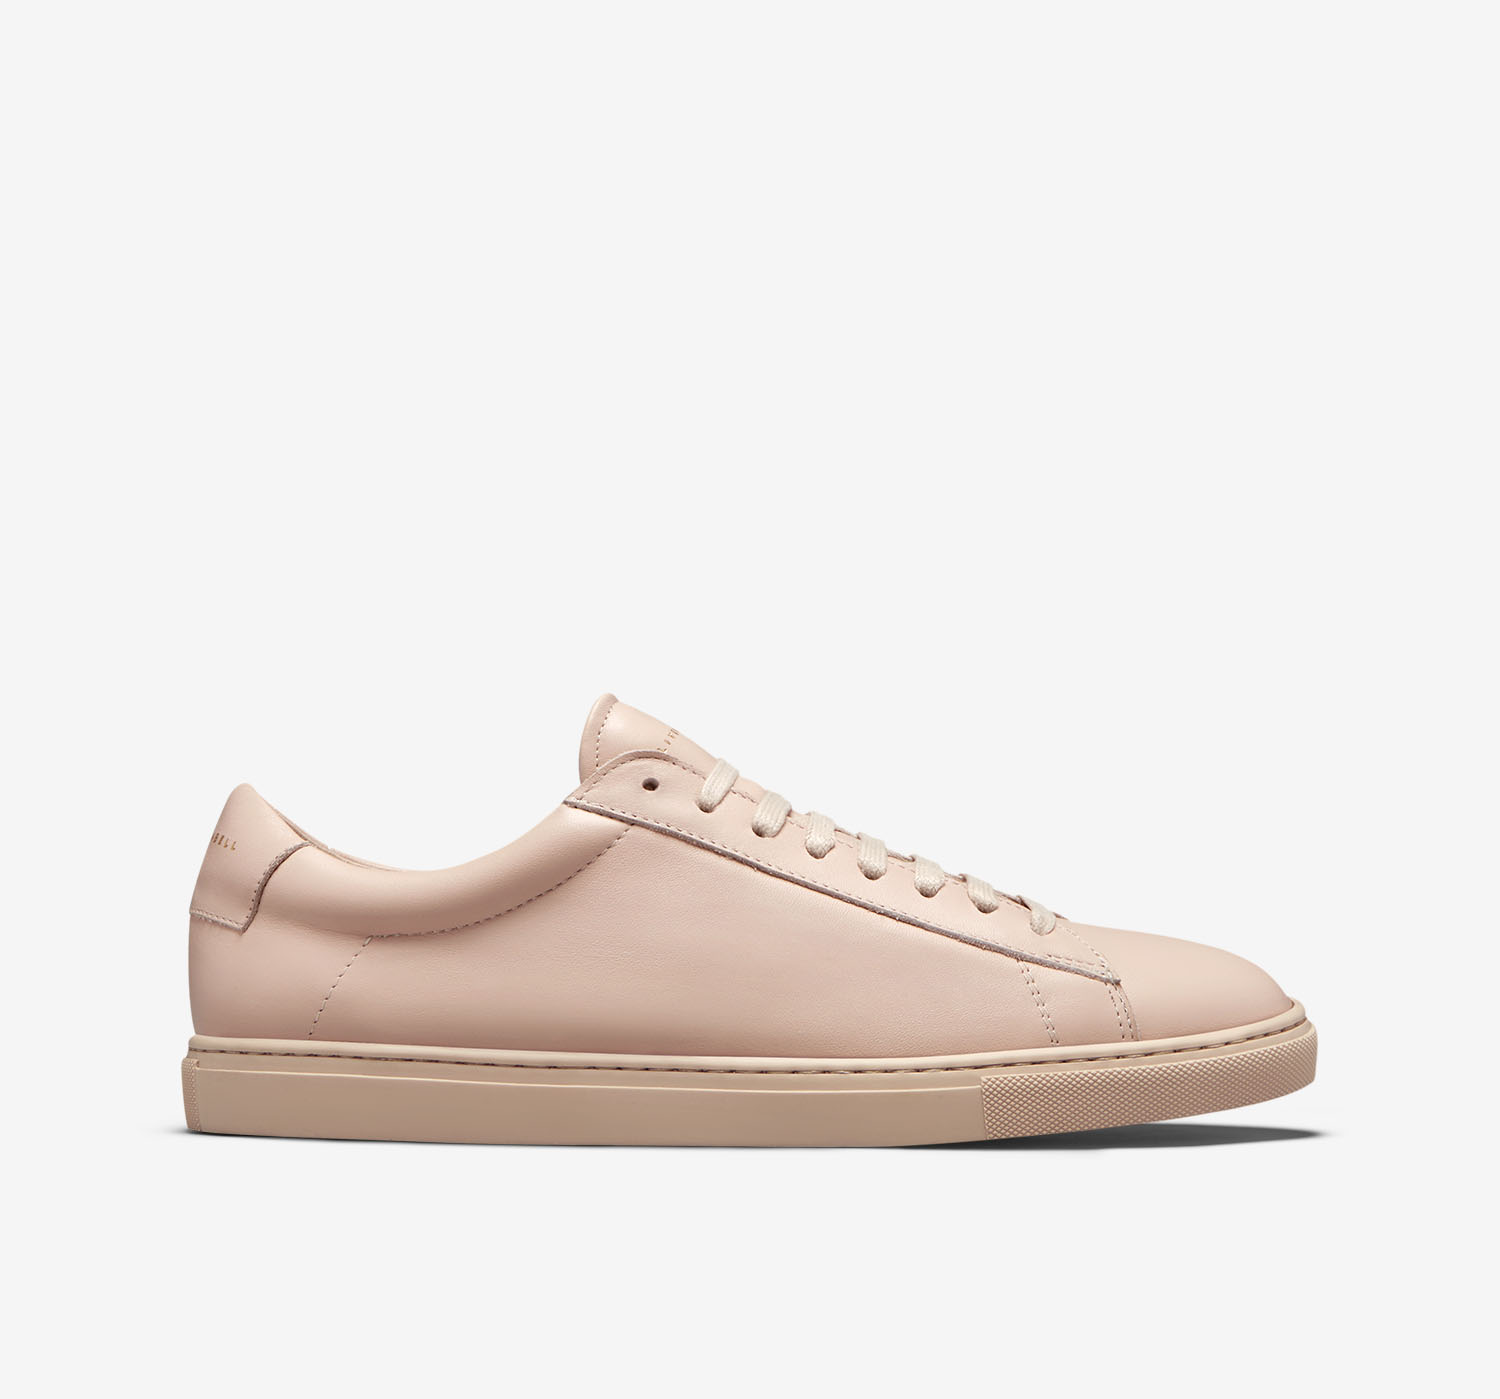 nude oliver cabell sneakers